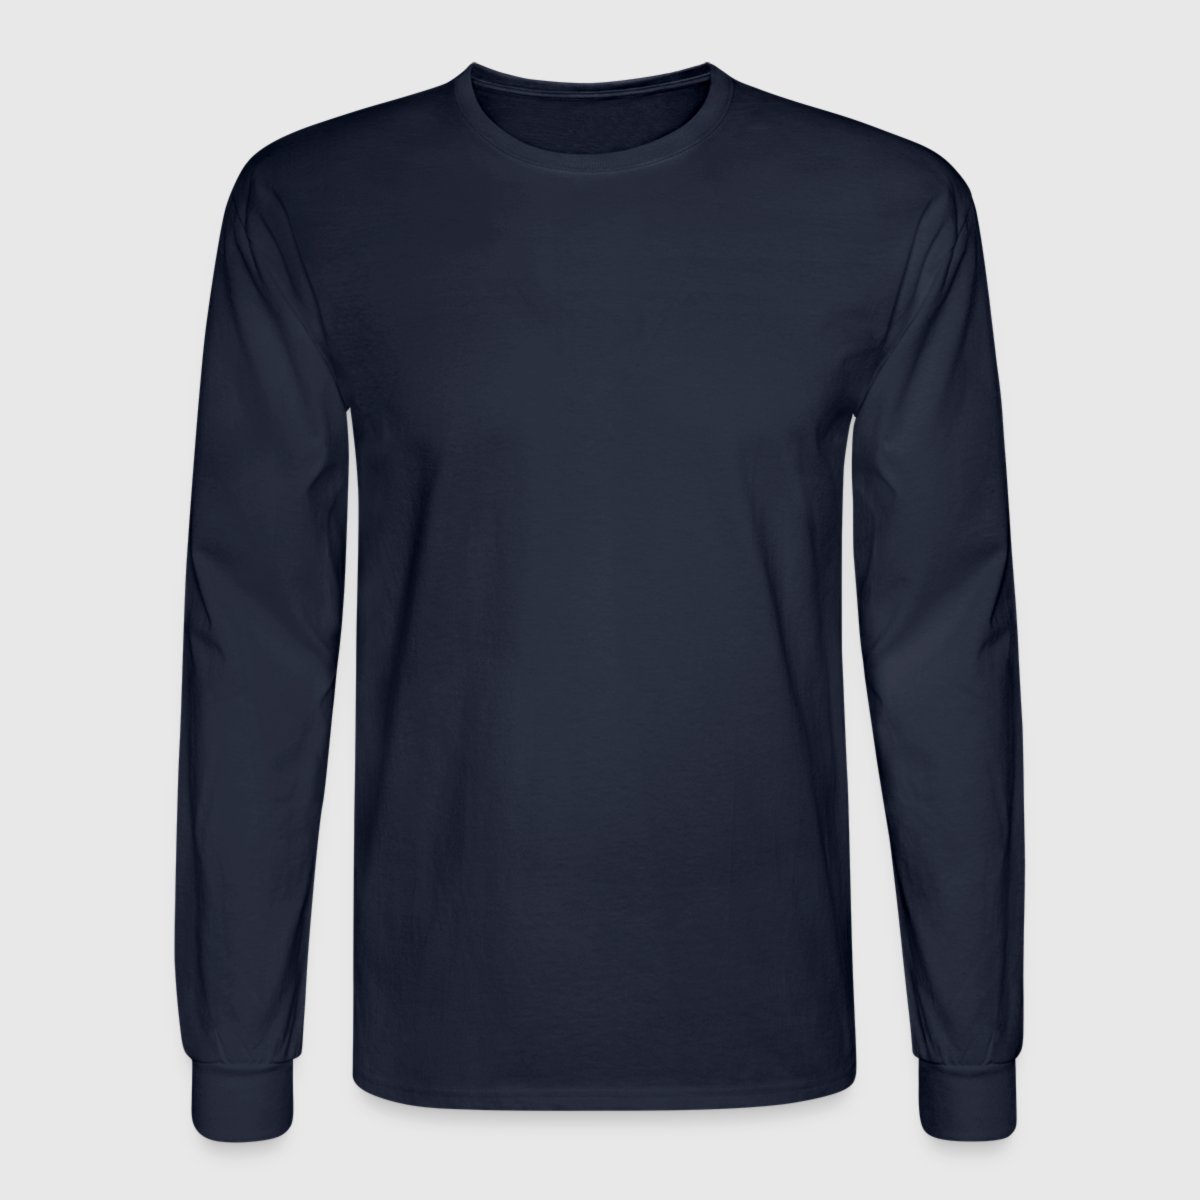 Men's Long Sleeve T-Shirt - Front